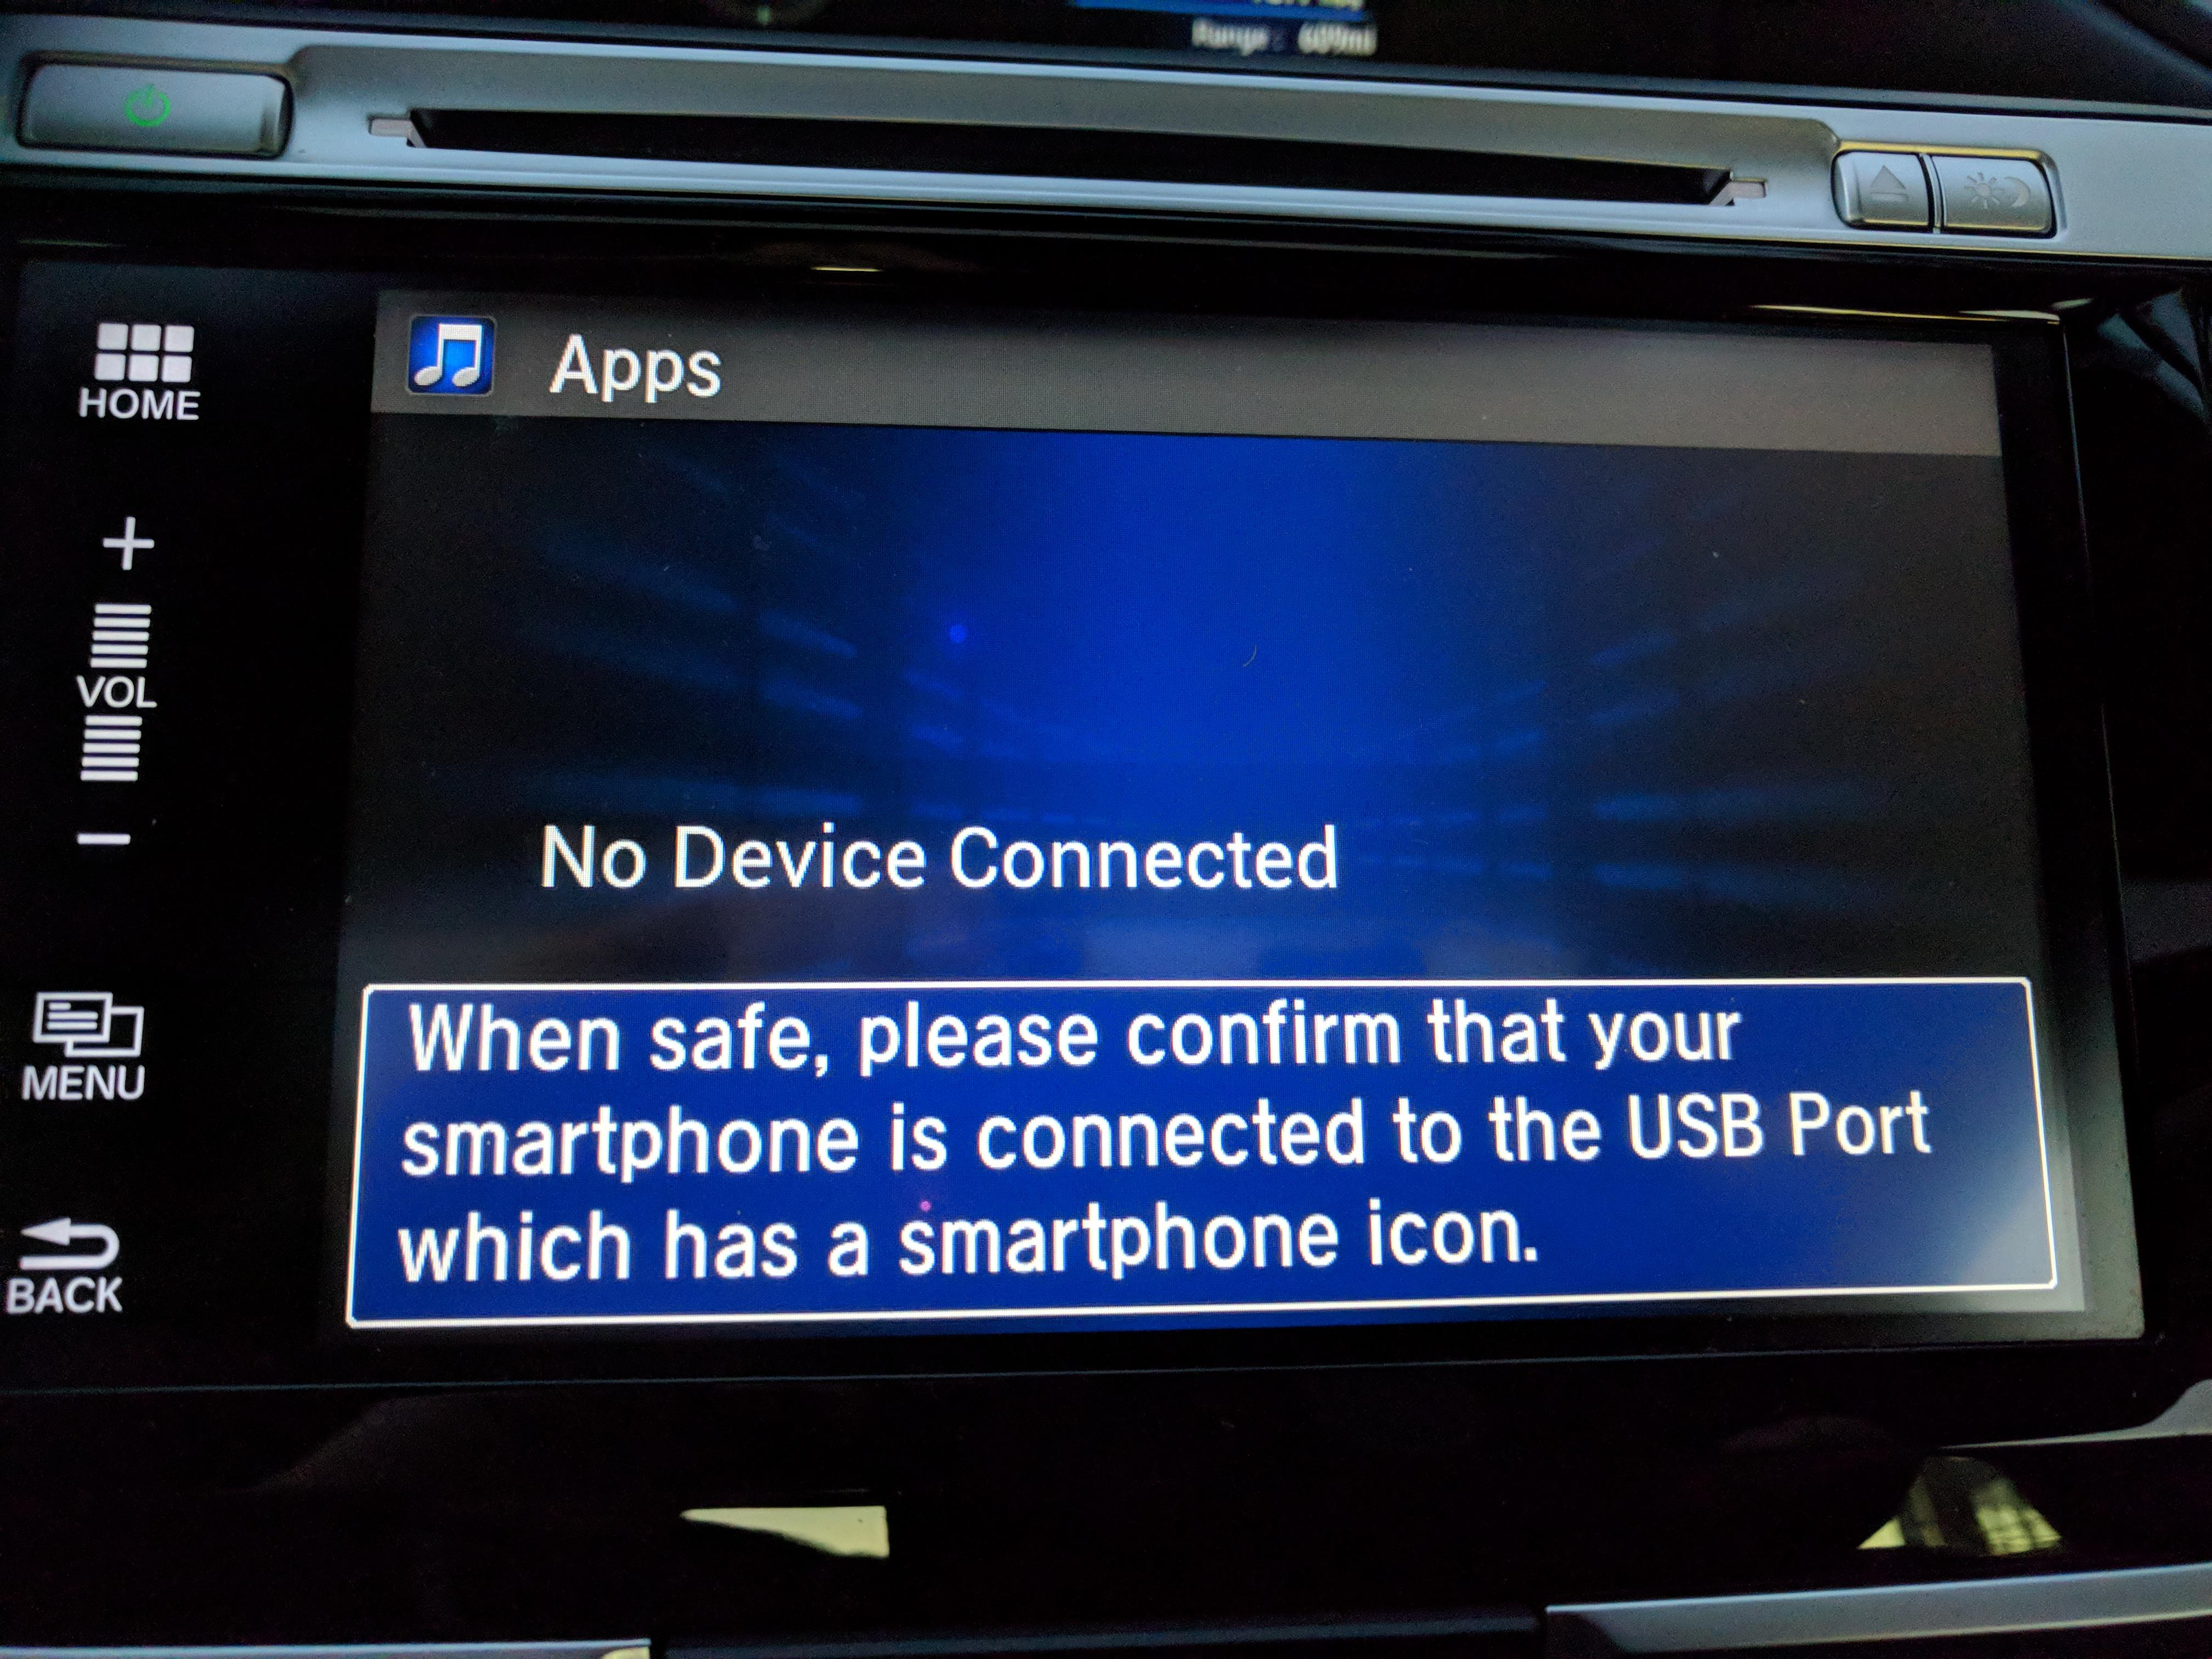 Can't connect w/ Samsung Galaxy S8 - Android Auto Help